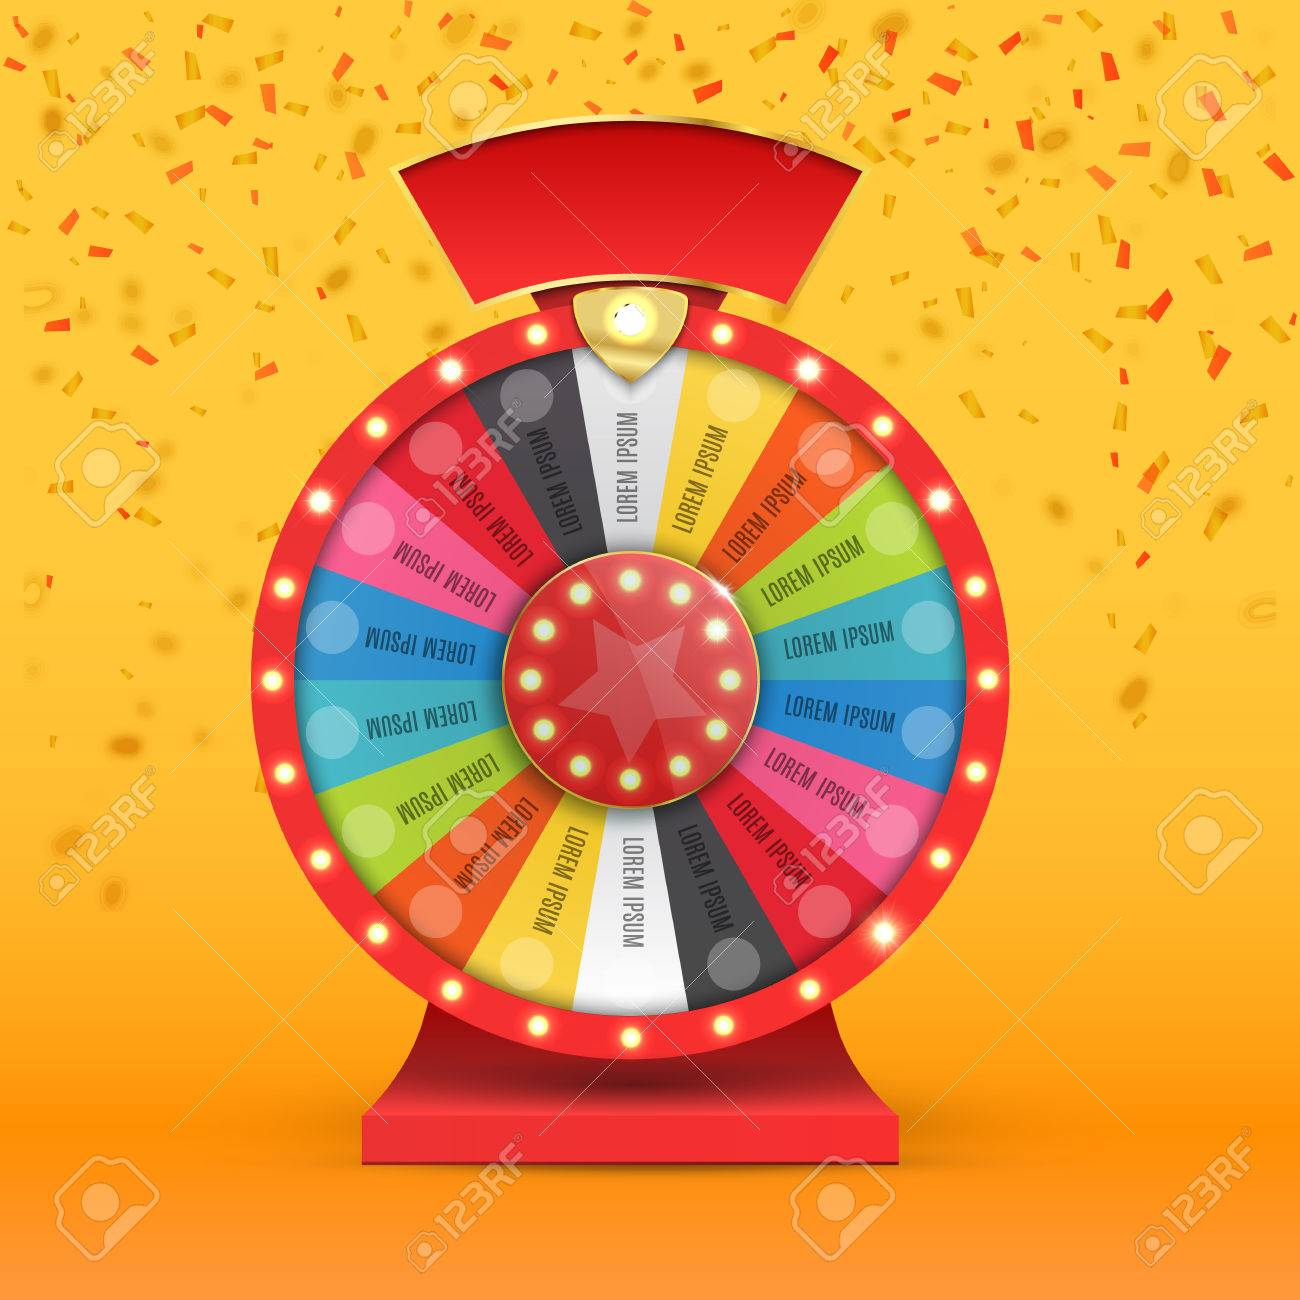 Colorful wheel of luck or fortune infographic. Vector illustration - 69007333